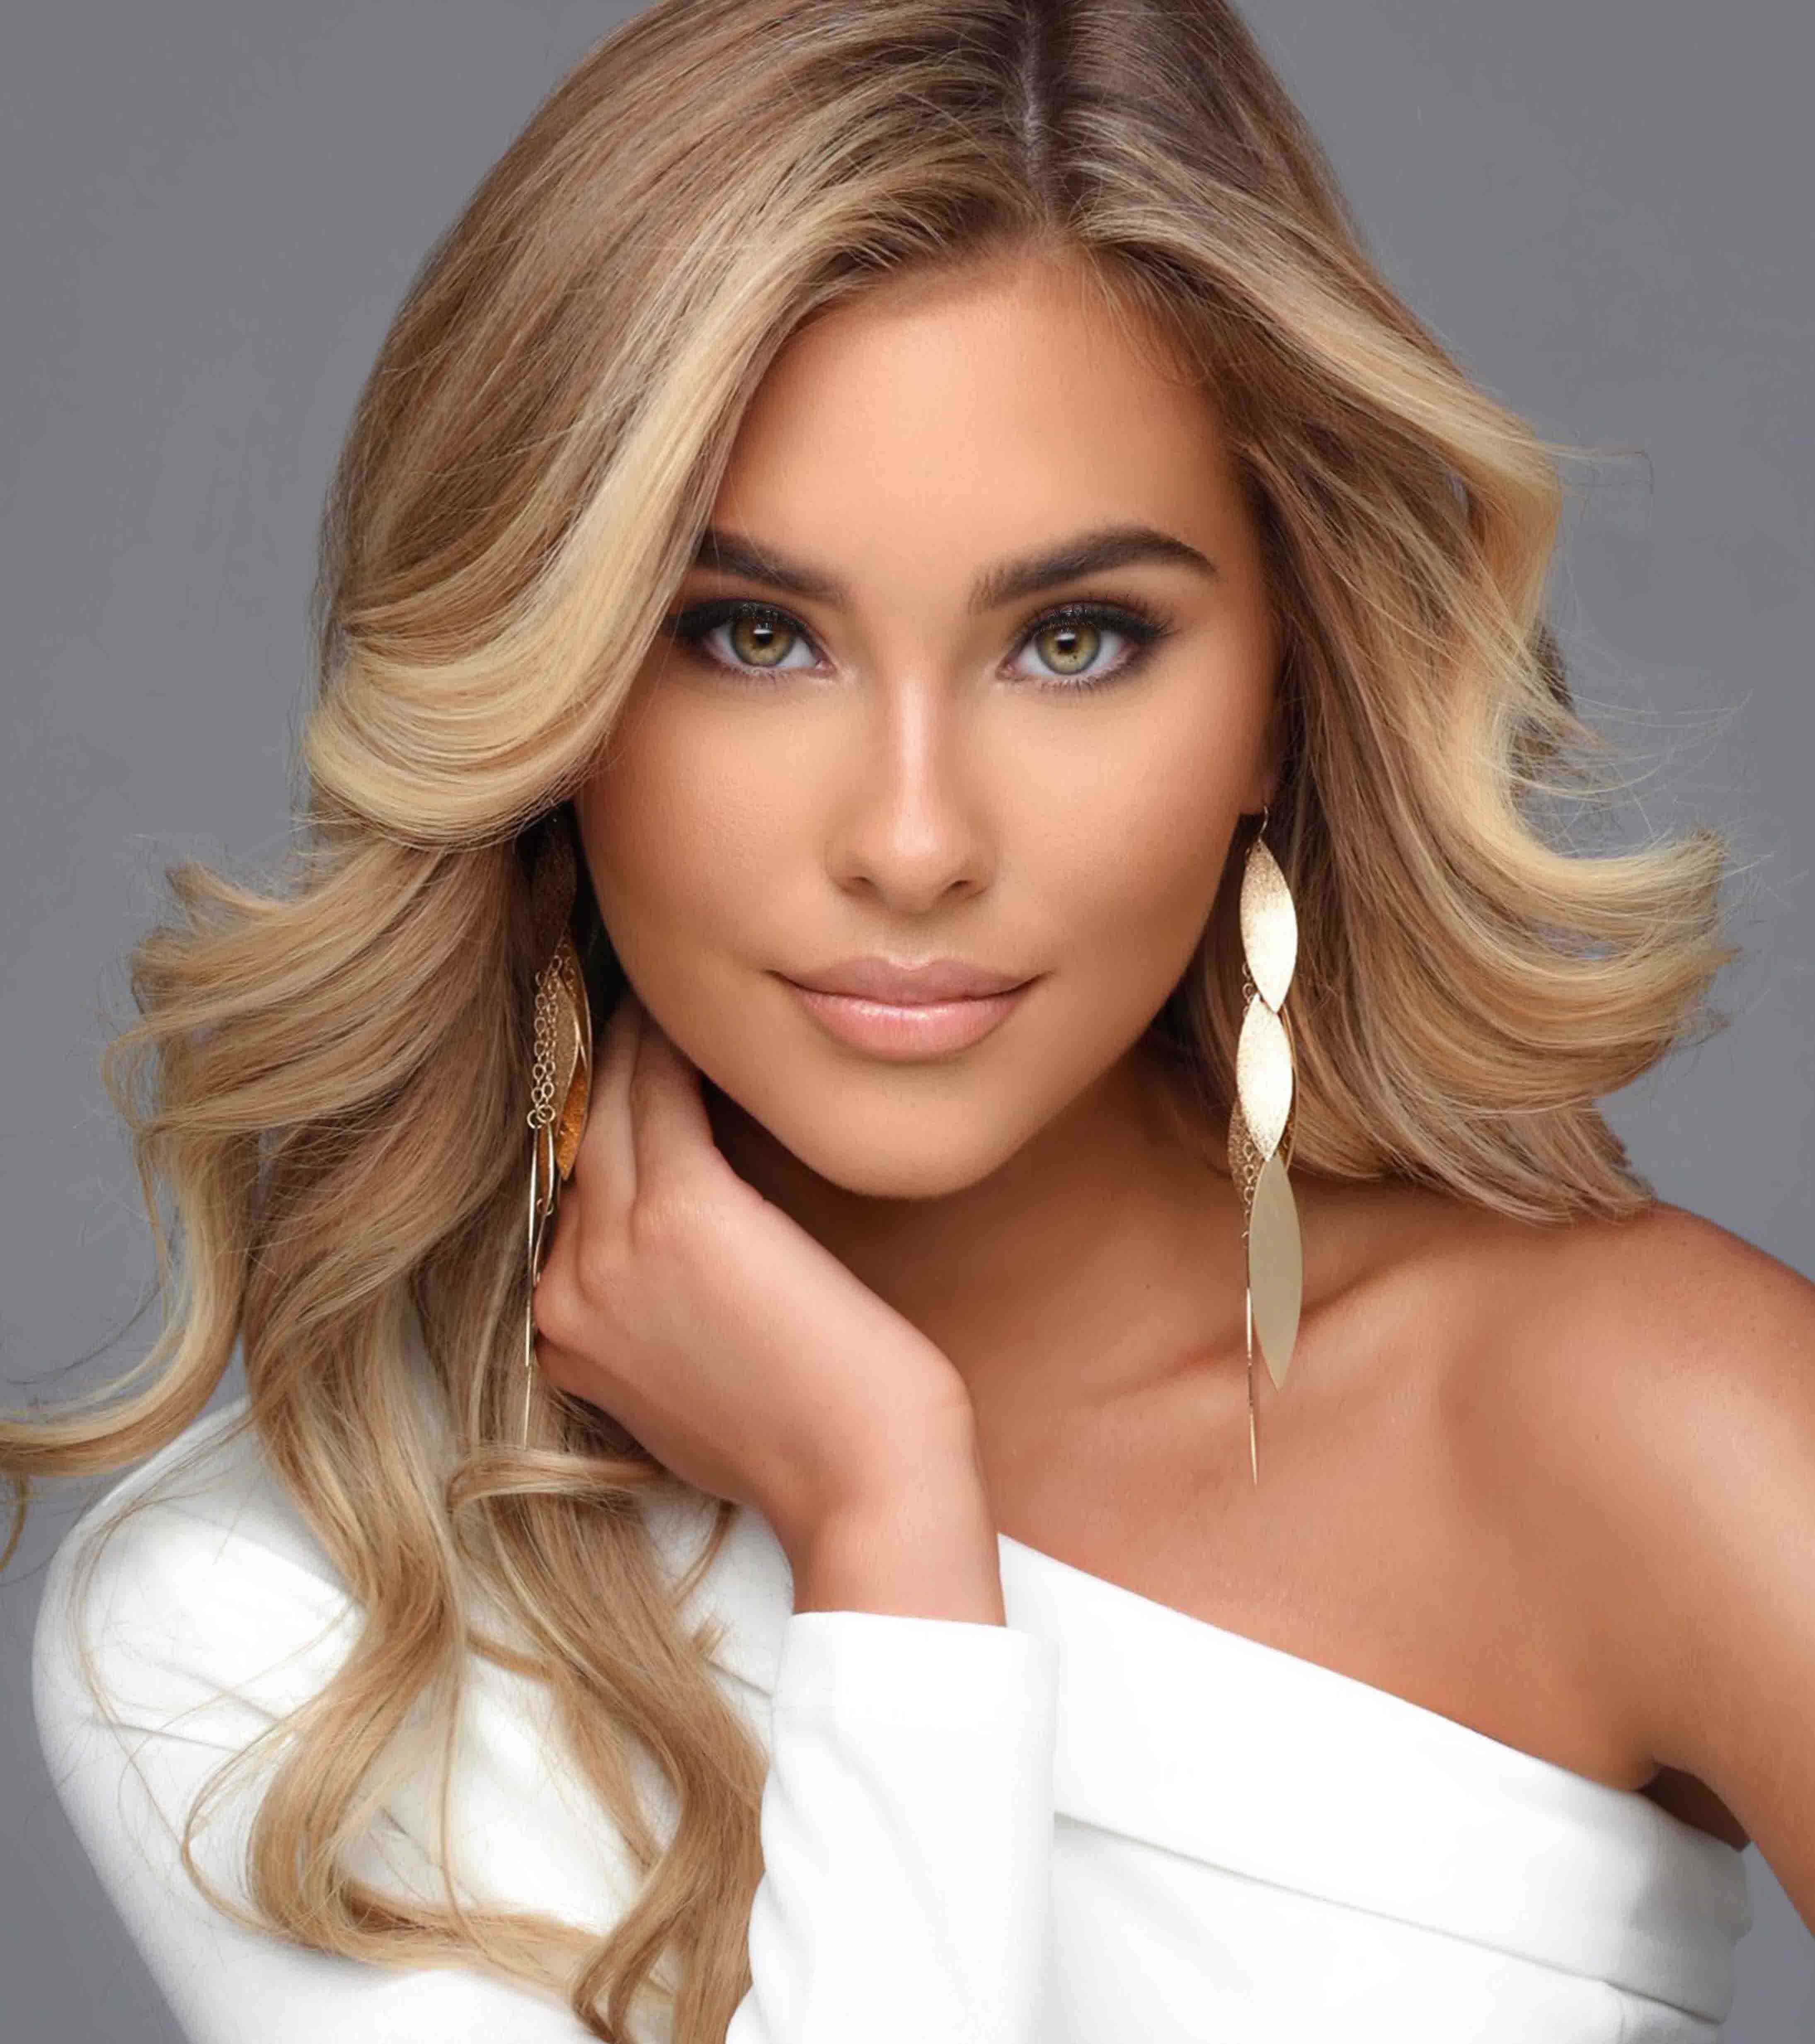 Miss Teen USA: I was terrified by hacker blackmail